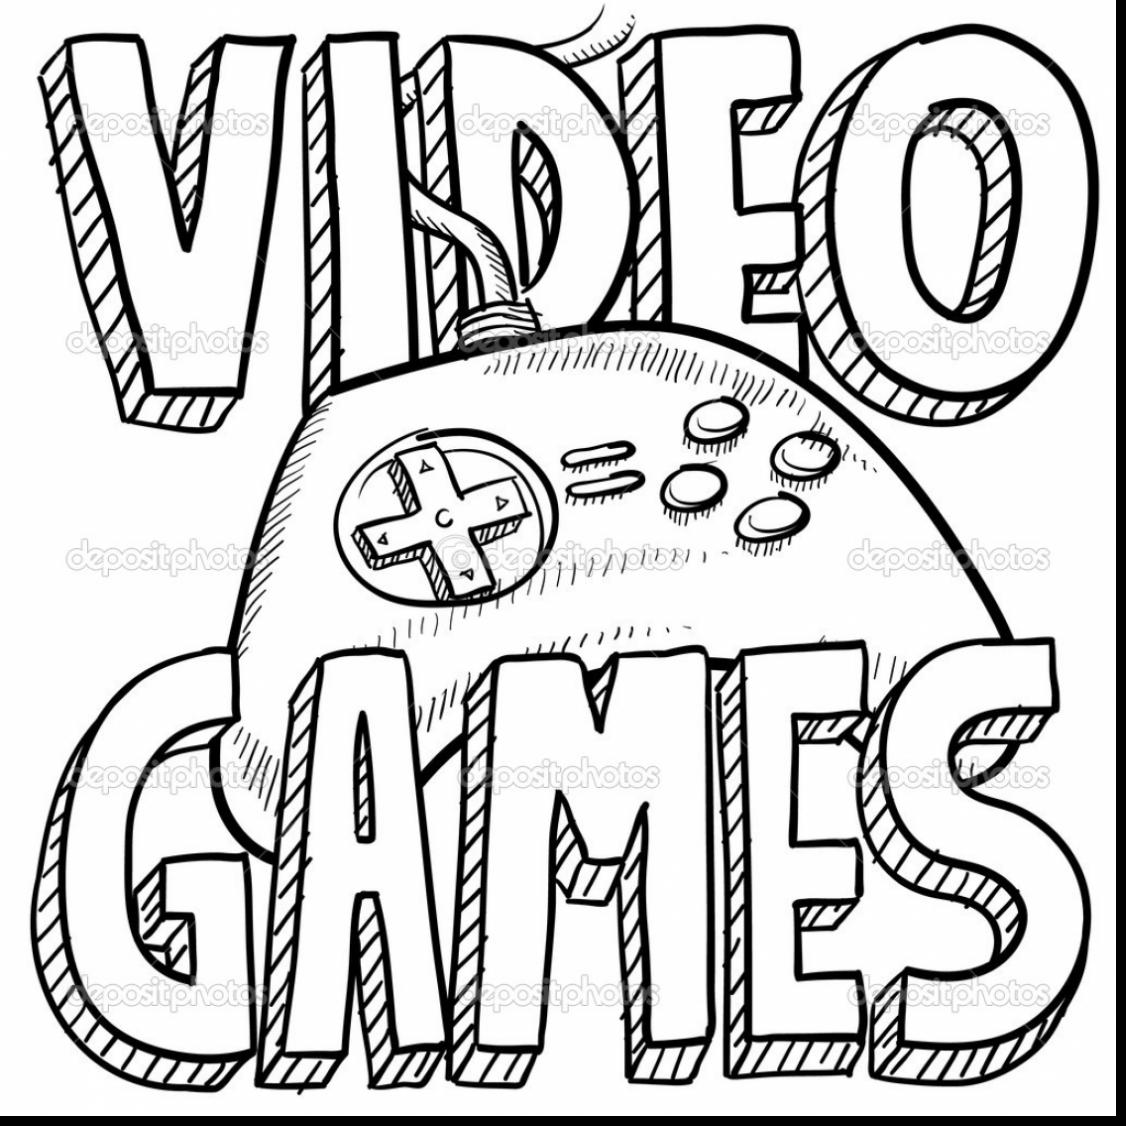 1126x1126 Game Controller Free Coloring Pages For Kids Printable Colouring